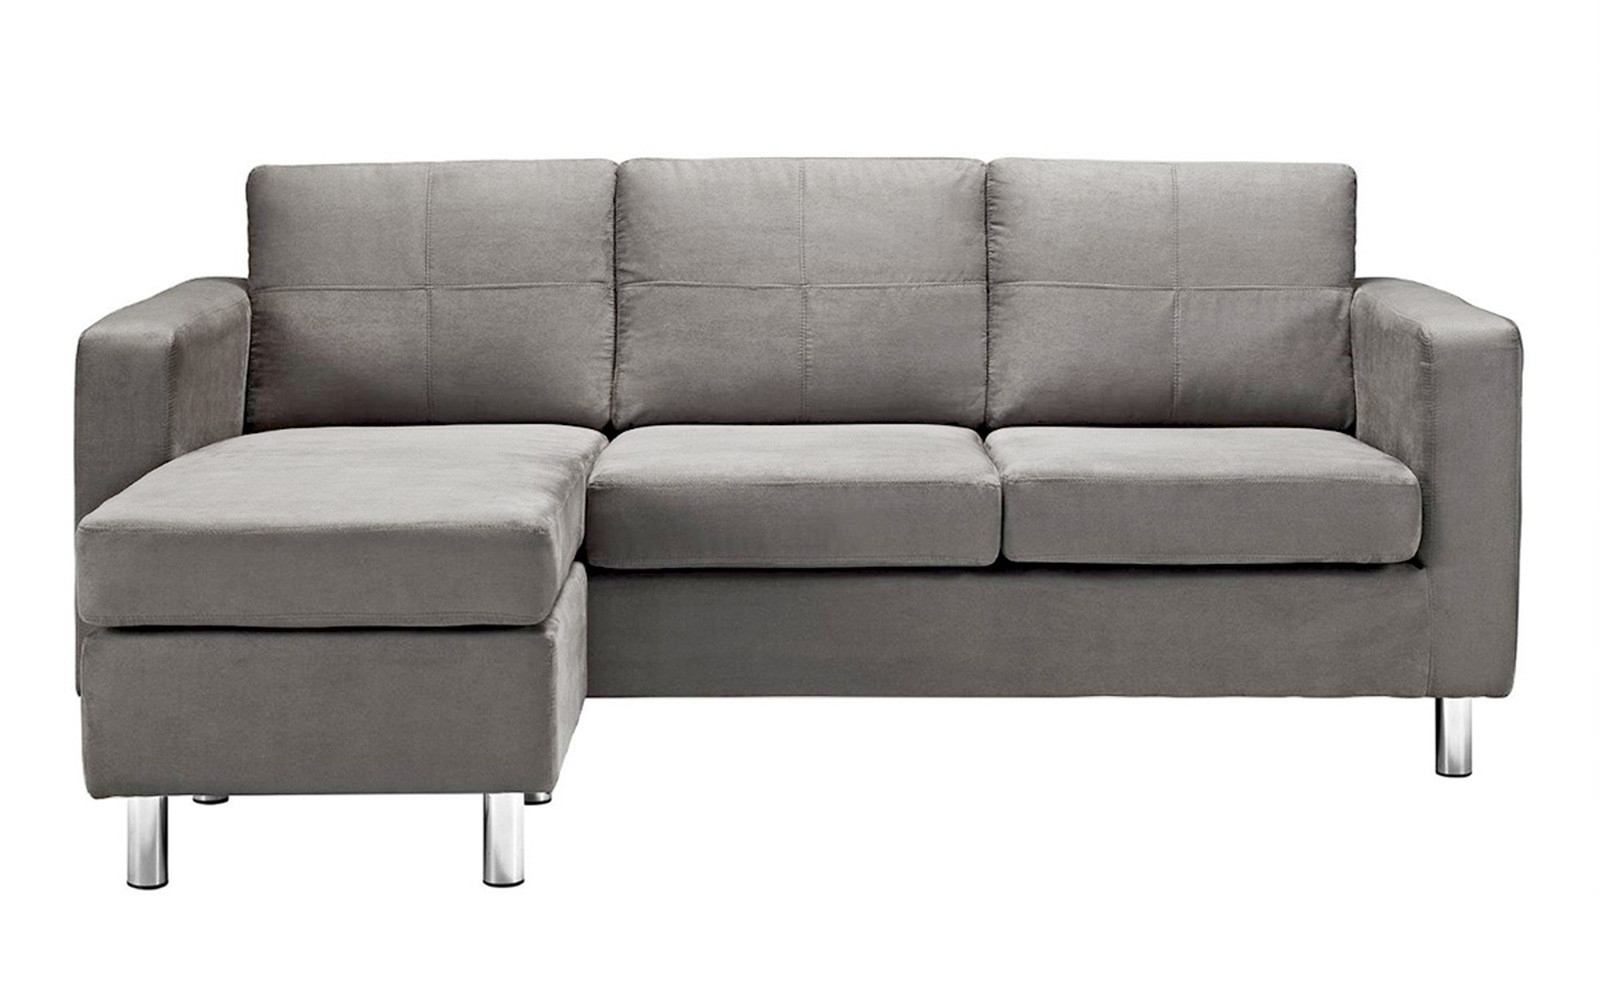 2017 Small Sofas With Chaise Inside Furniture: Pretty Collection Of Microfiber Sectional Sofa (View 11 of 15)